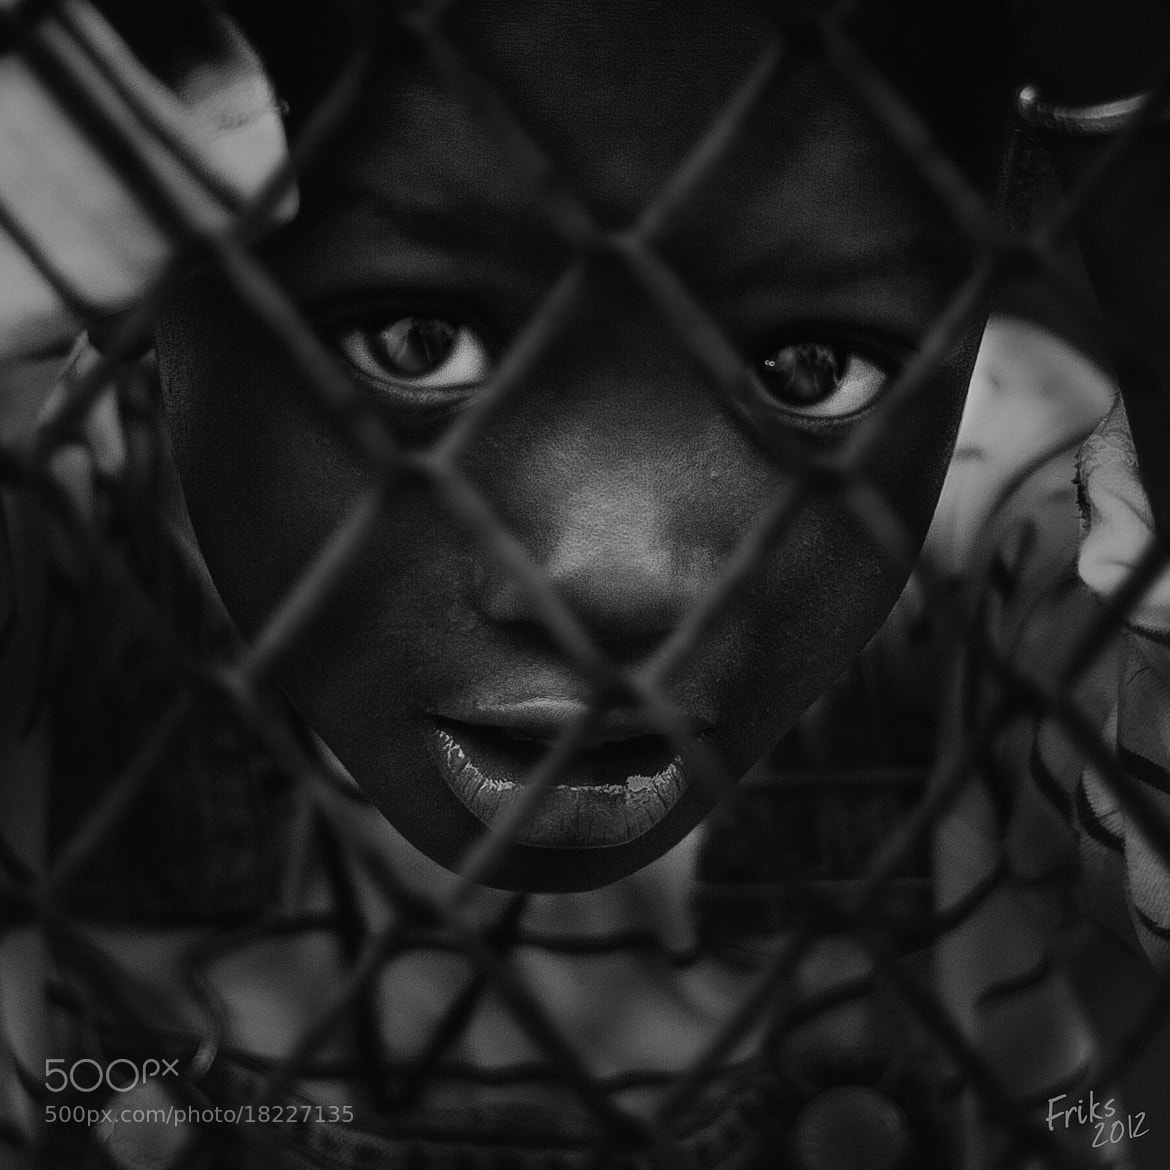 Photograph A CHILD AND A GRID by Mr Friks on 500px